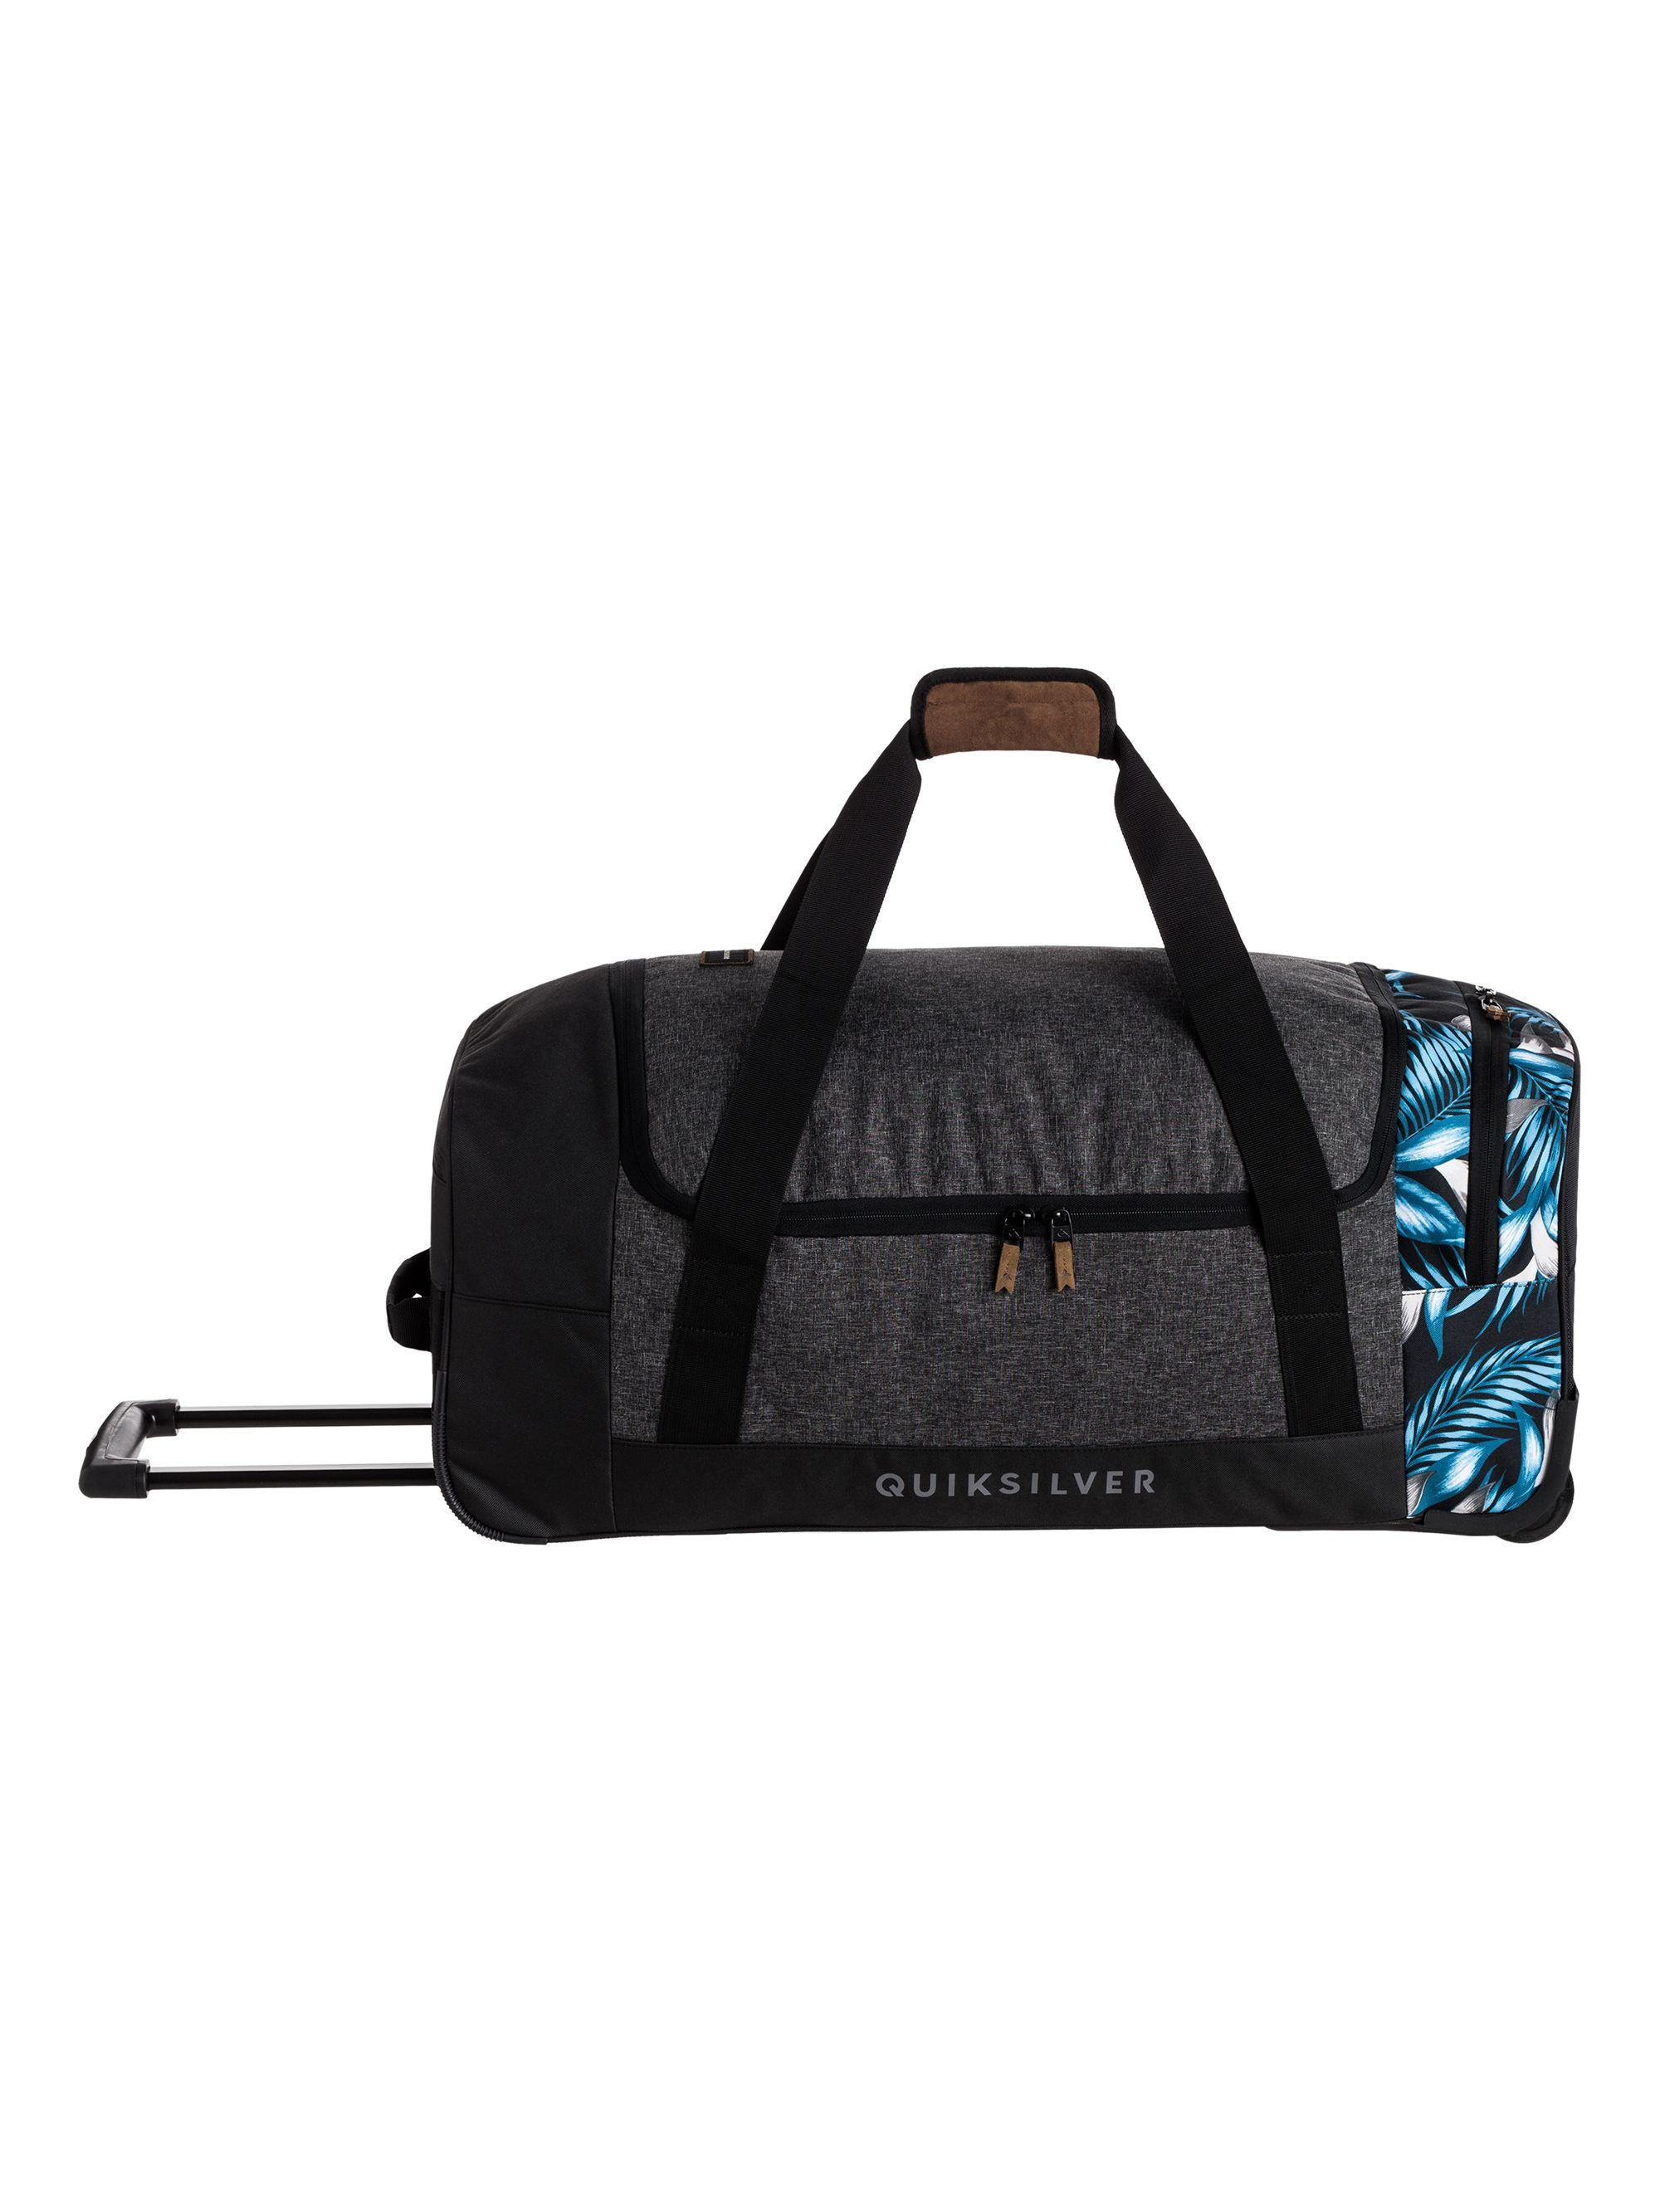 Quiksilver Centurion Large Wheeled Duffle Bag Review